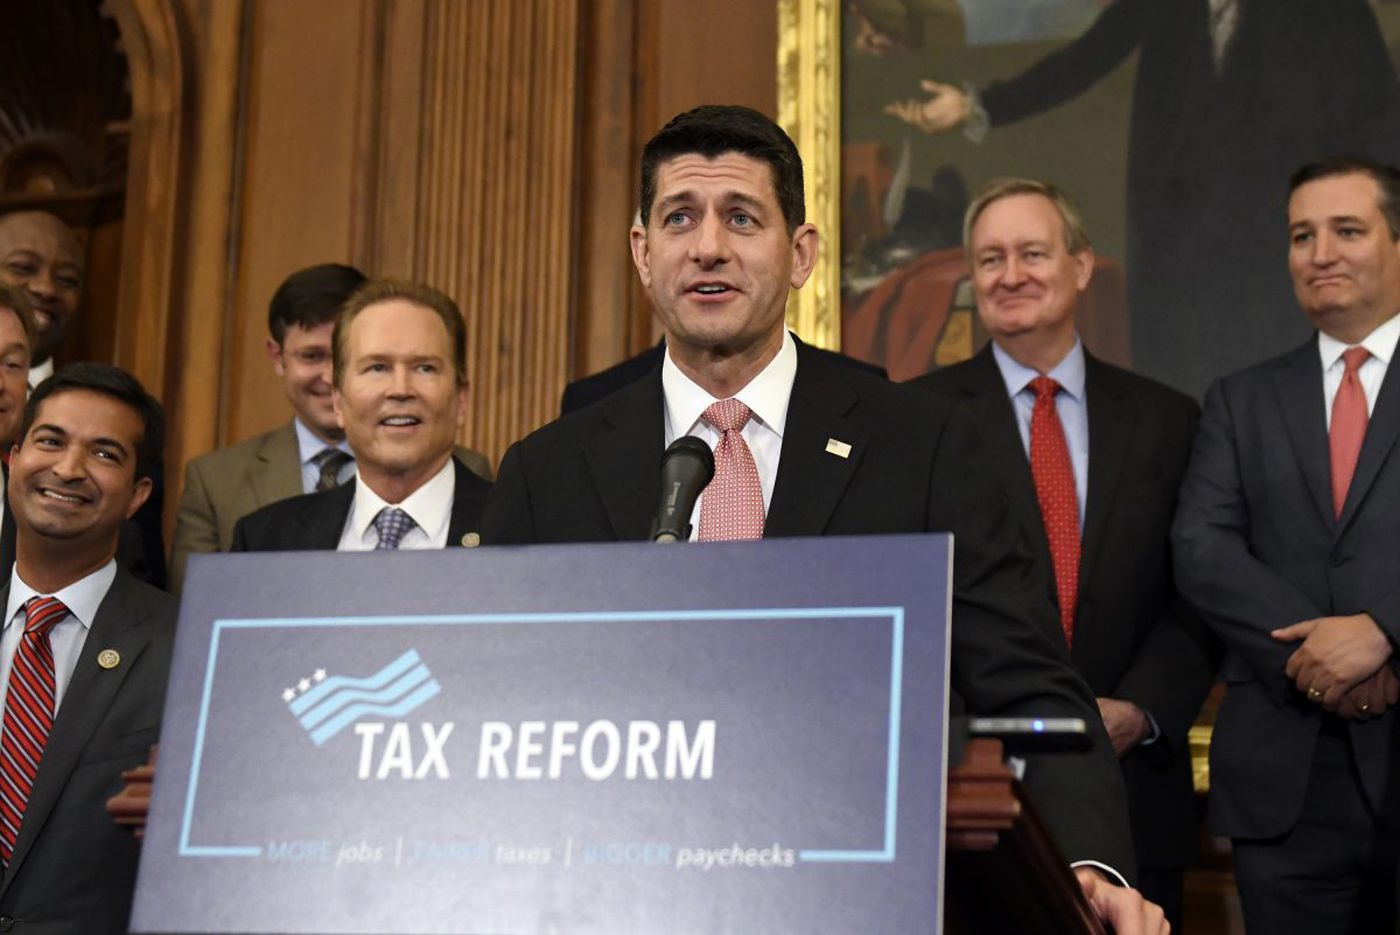 3 takeaways from tax-reform plan: On efficiency, economic growth, and cost